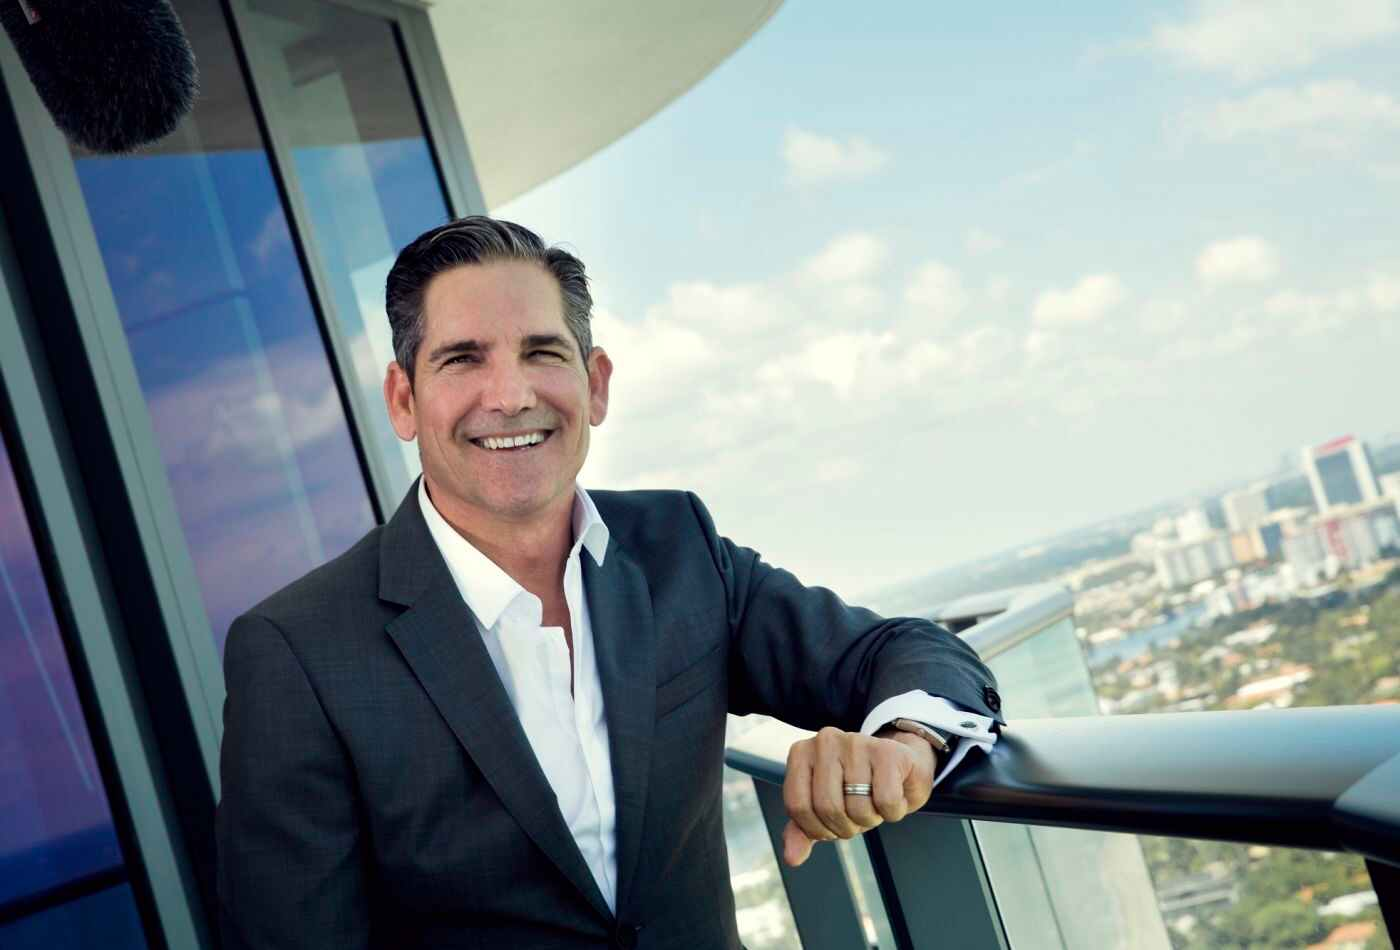 VLAD TV Interviews Grant Cardone: Claims Buying a House is One of the Dumbest Investments You Can Make